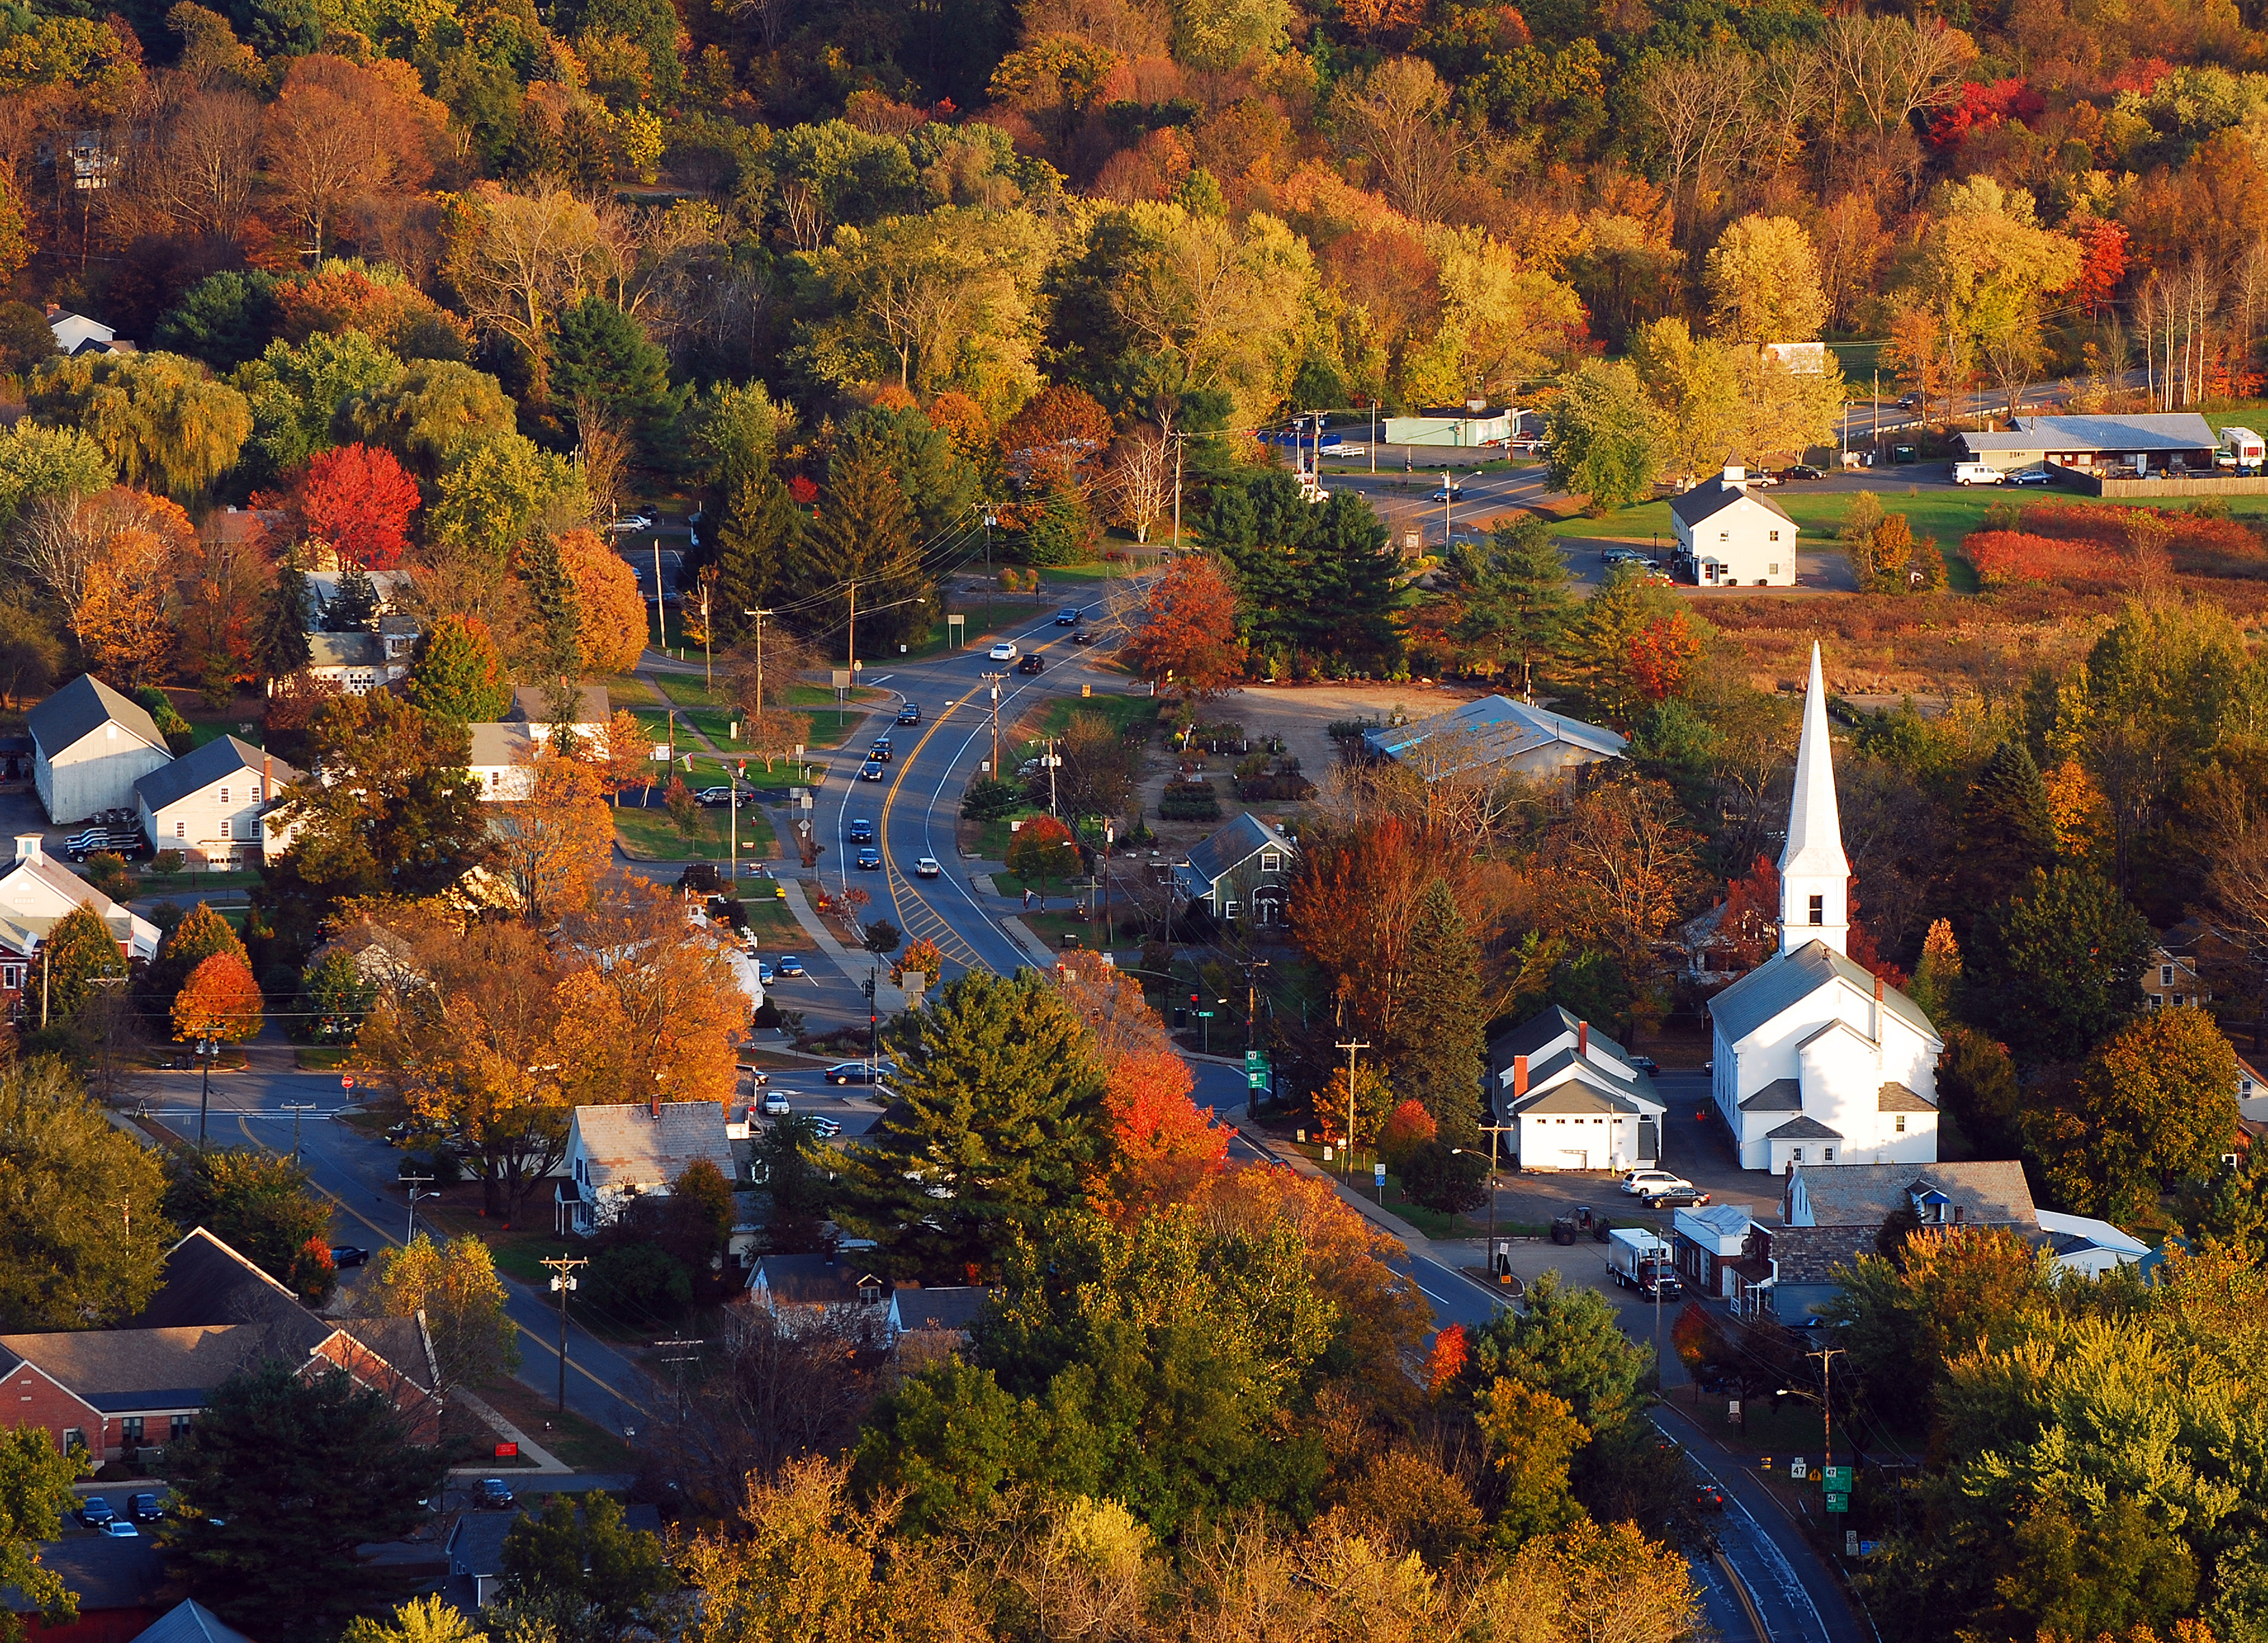 arial view of rural Vermont town